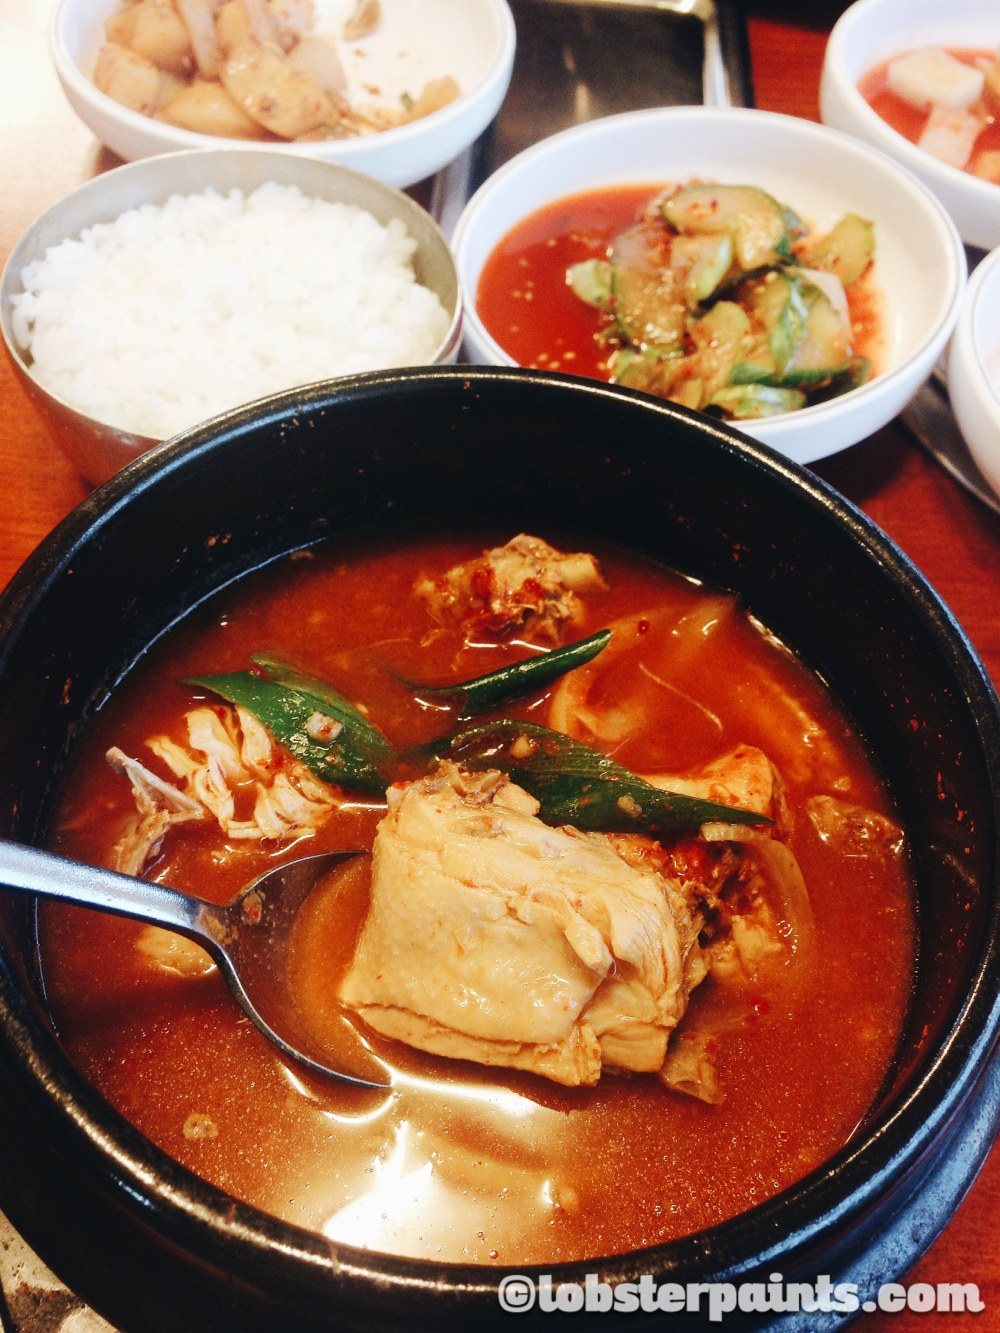 Spicy Braised Chicken 닭볶음탕 | Seoul, South Korea